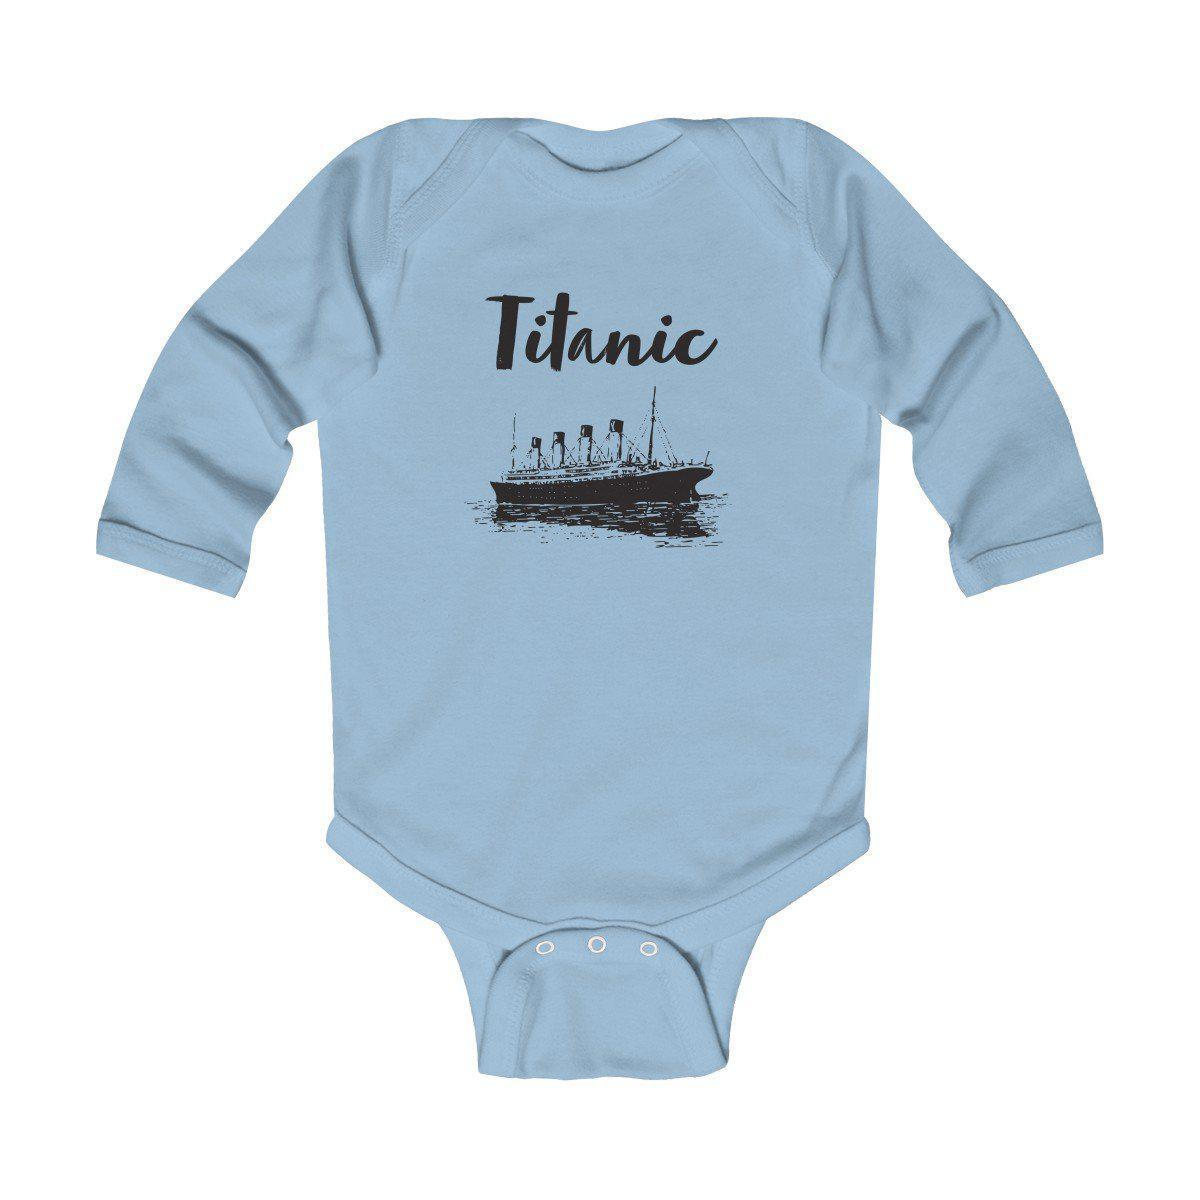 Boys & girls Titanic infant bodysuit, long sleeve soft cotton baby suit, custom jumpsuit-Kids bodysuit-Printify-titanic-big-ship-cruise-boy-gift-Titanic shop